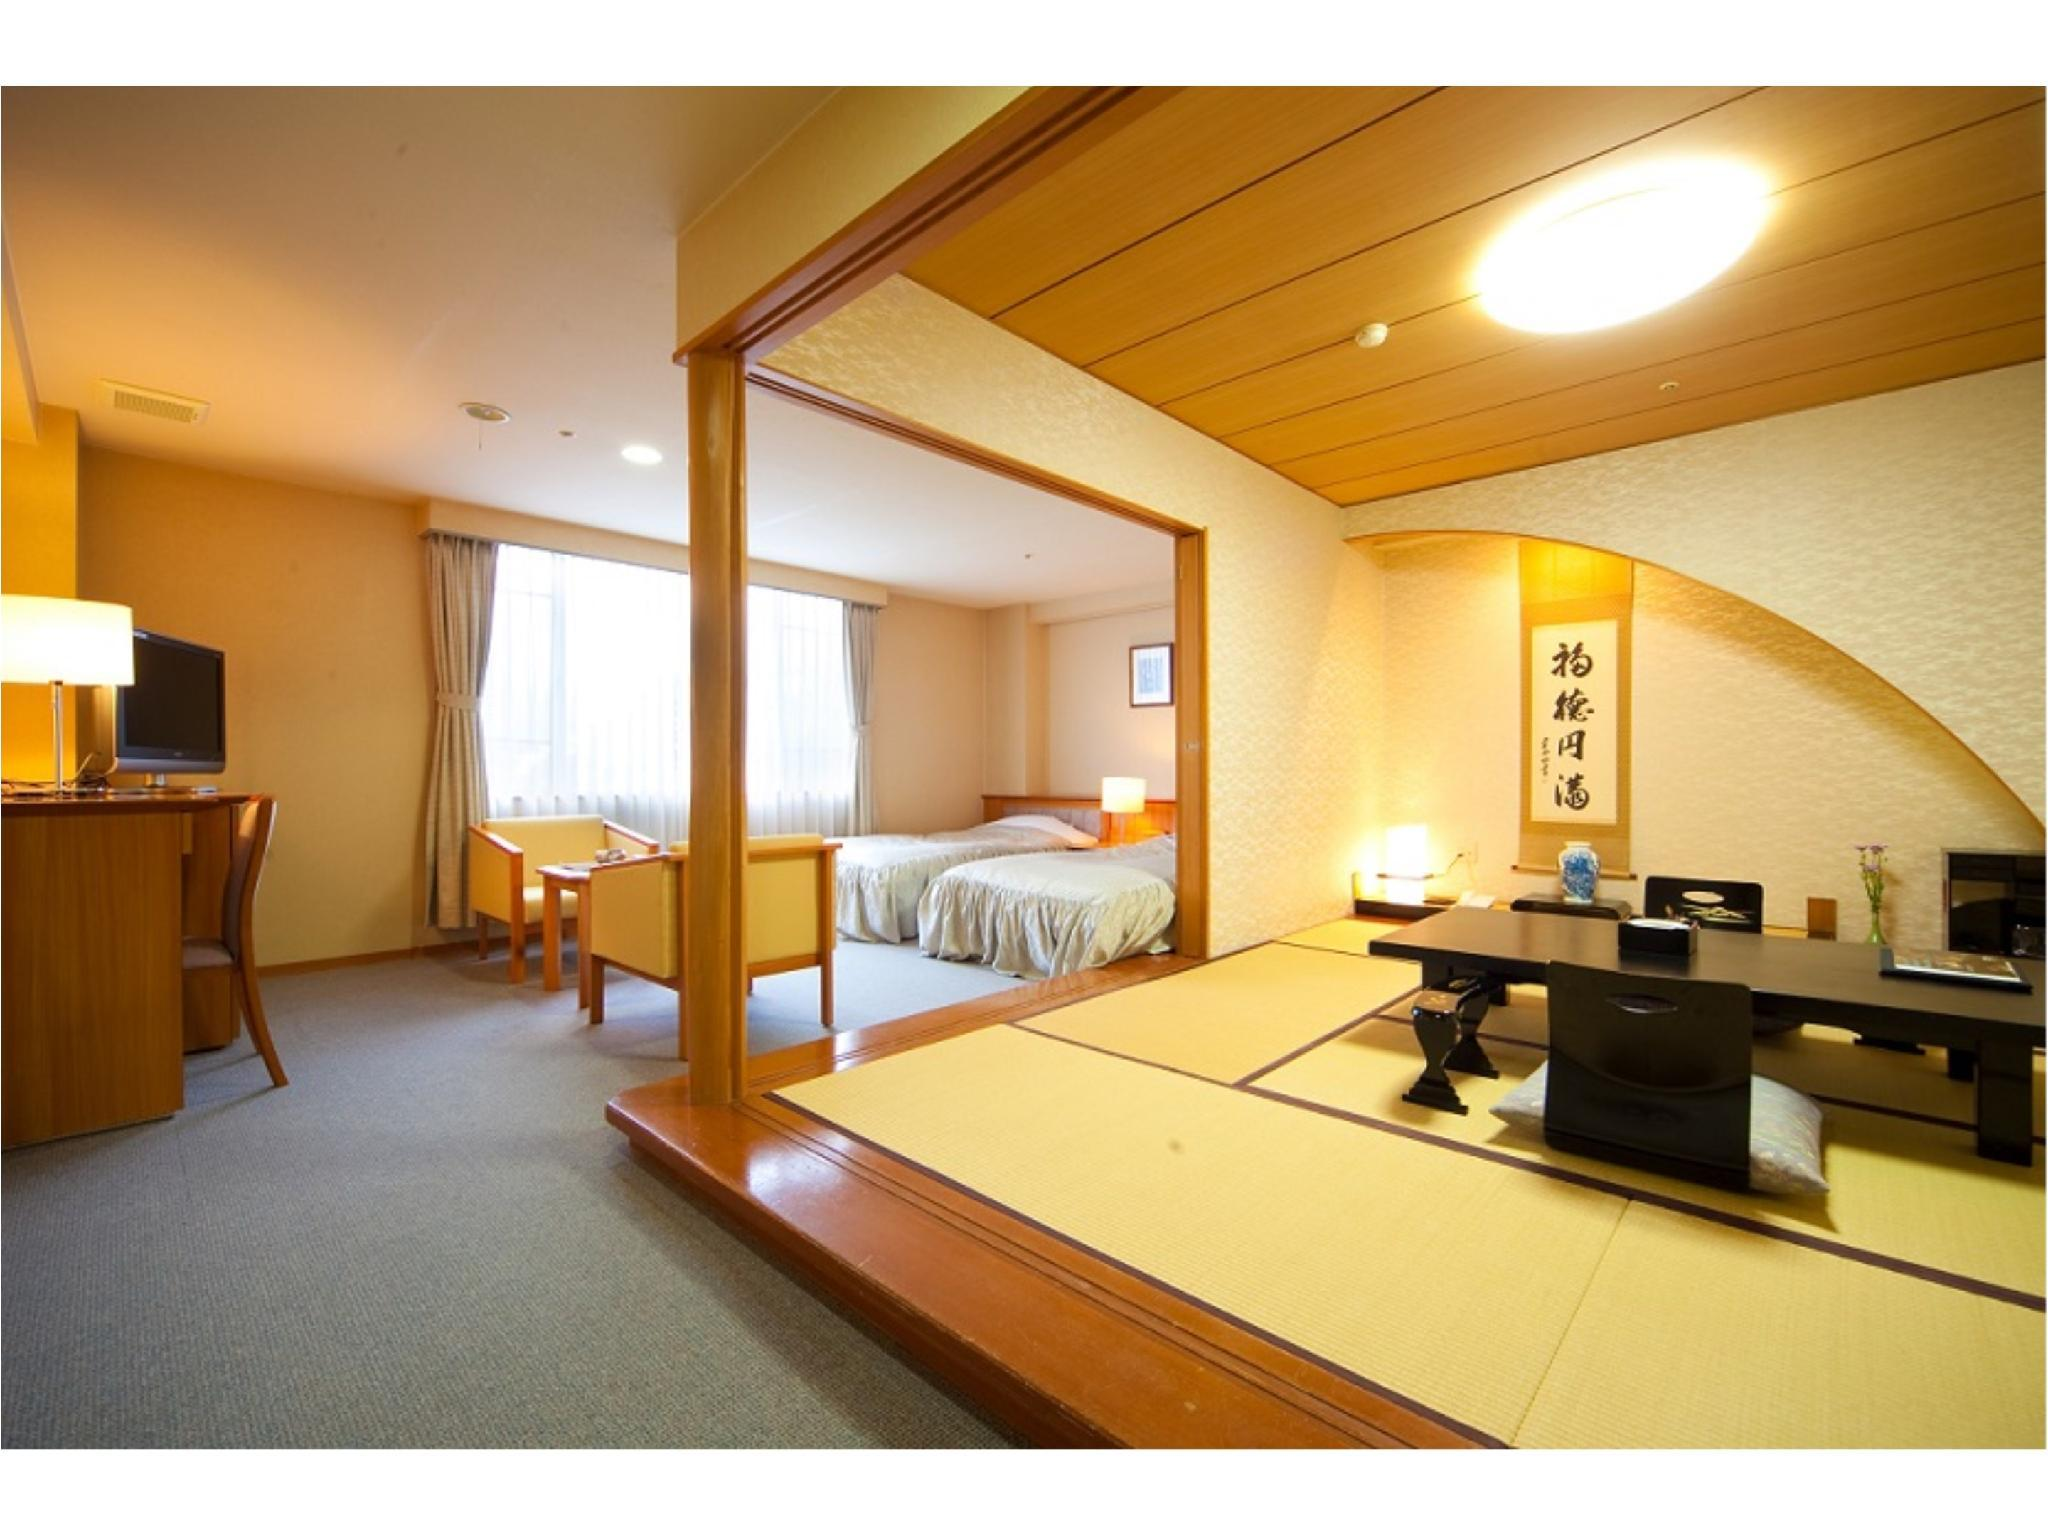 和洋式房 (2020年4月1日起禁菸) (Japanese/Western-style Room (*Non-smoking from 2020/4/1))